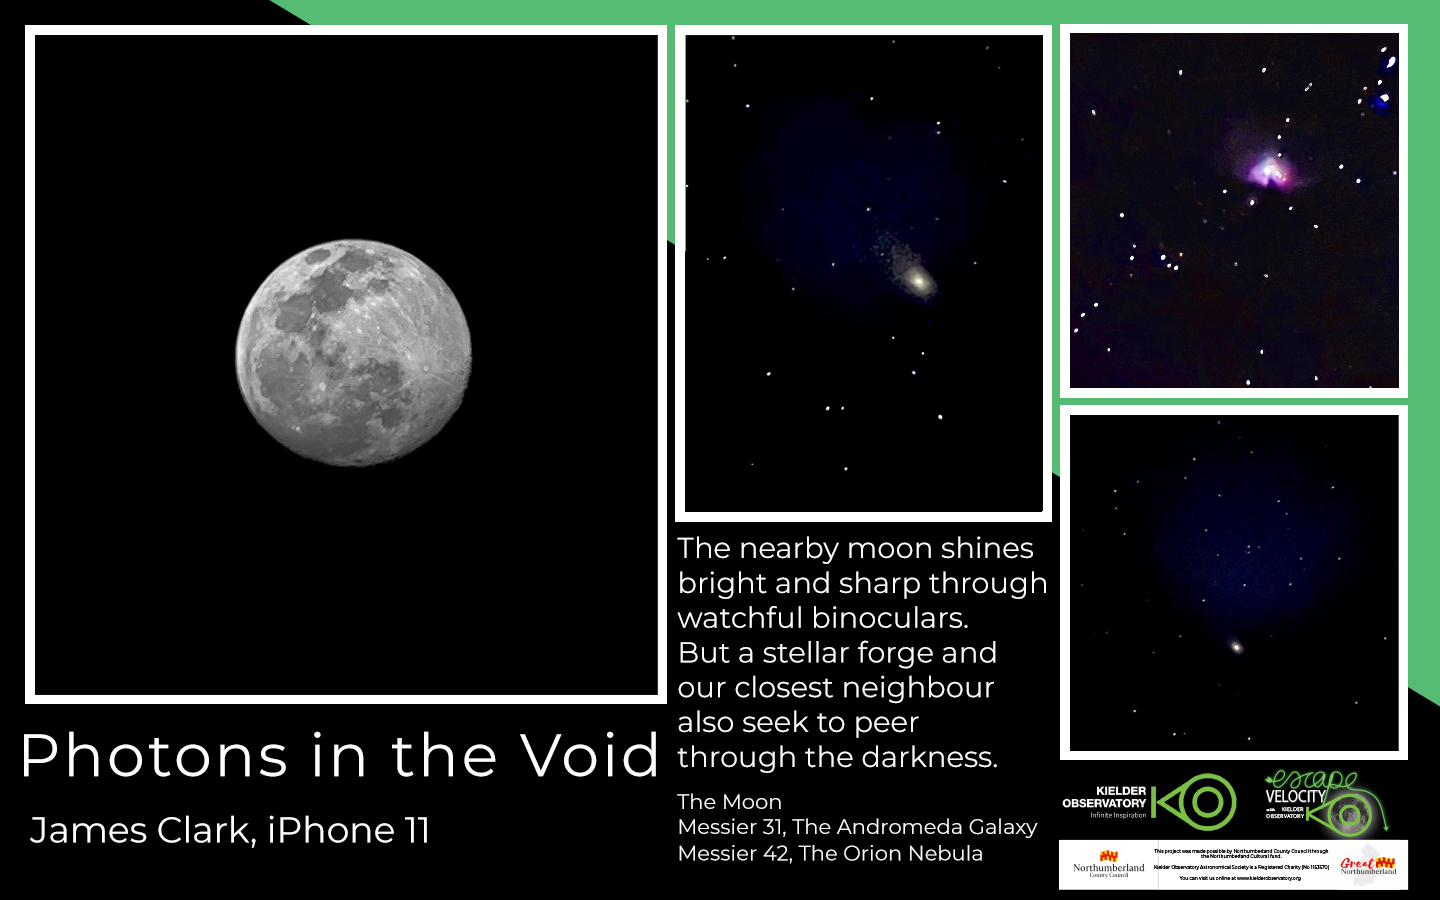 James Clark, Photons in the Void